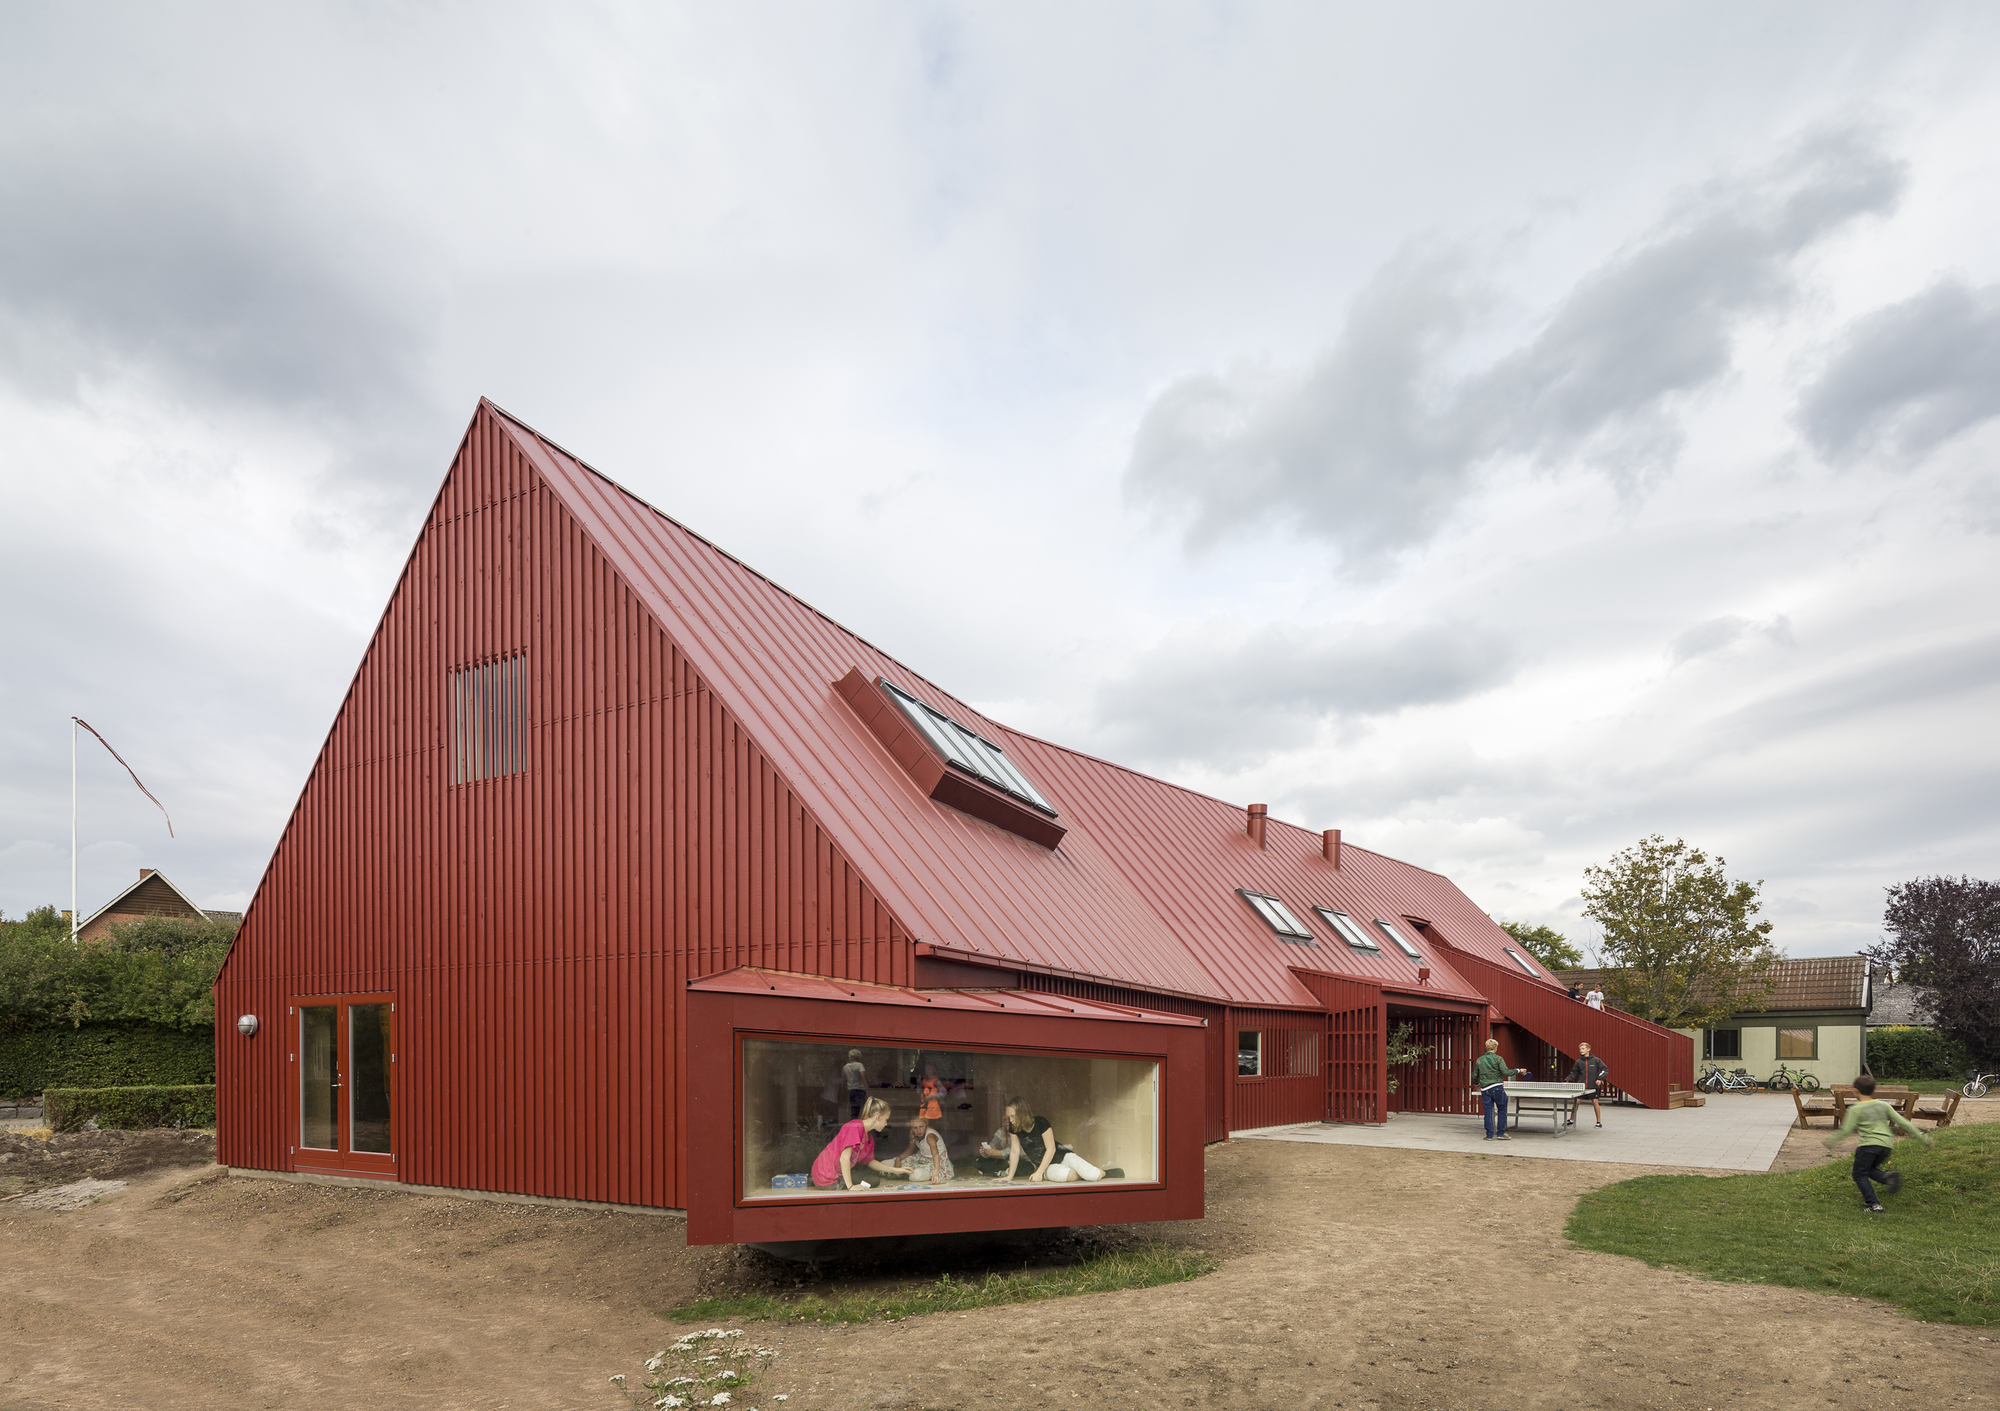 Gallery of Youth Centre in Roskilde / Cornelius + Vöge - 1